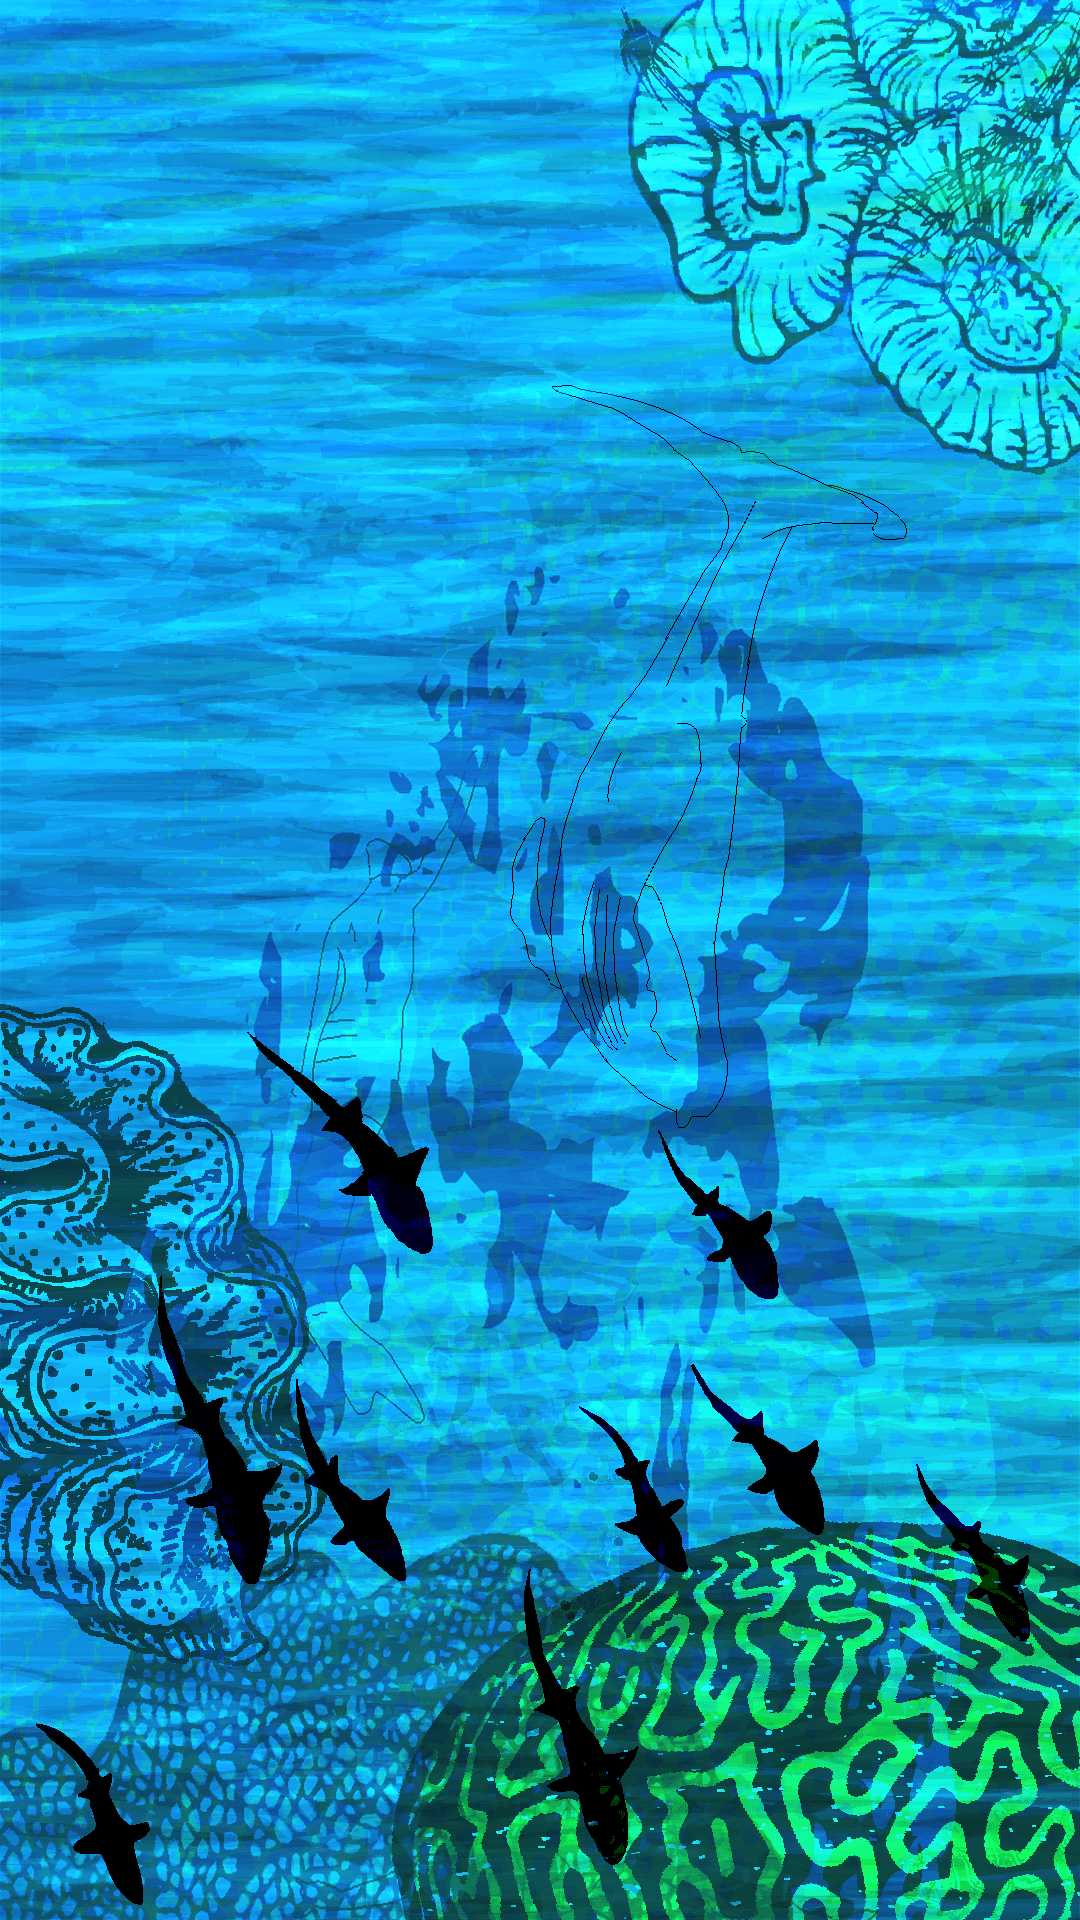 Animated image of sharks in an ocean